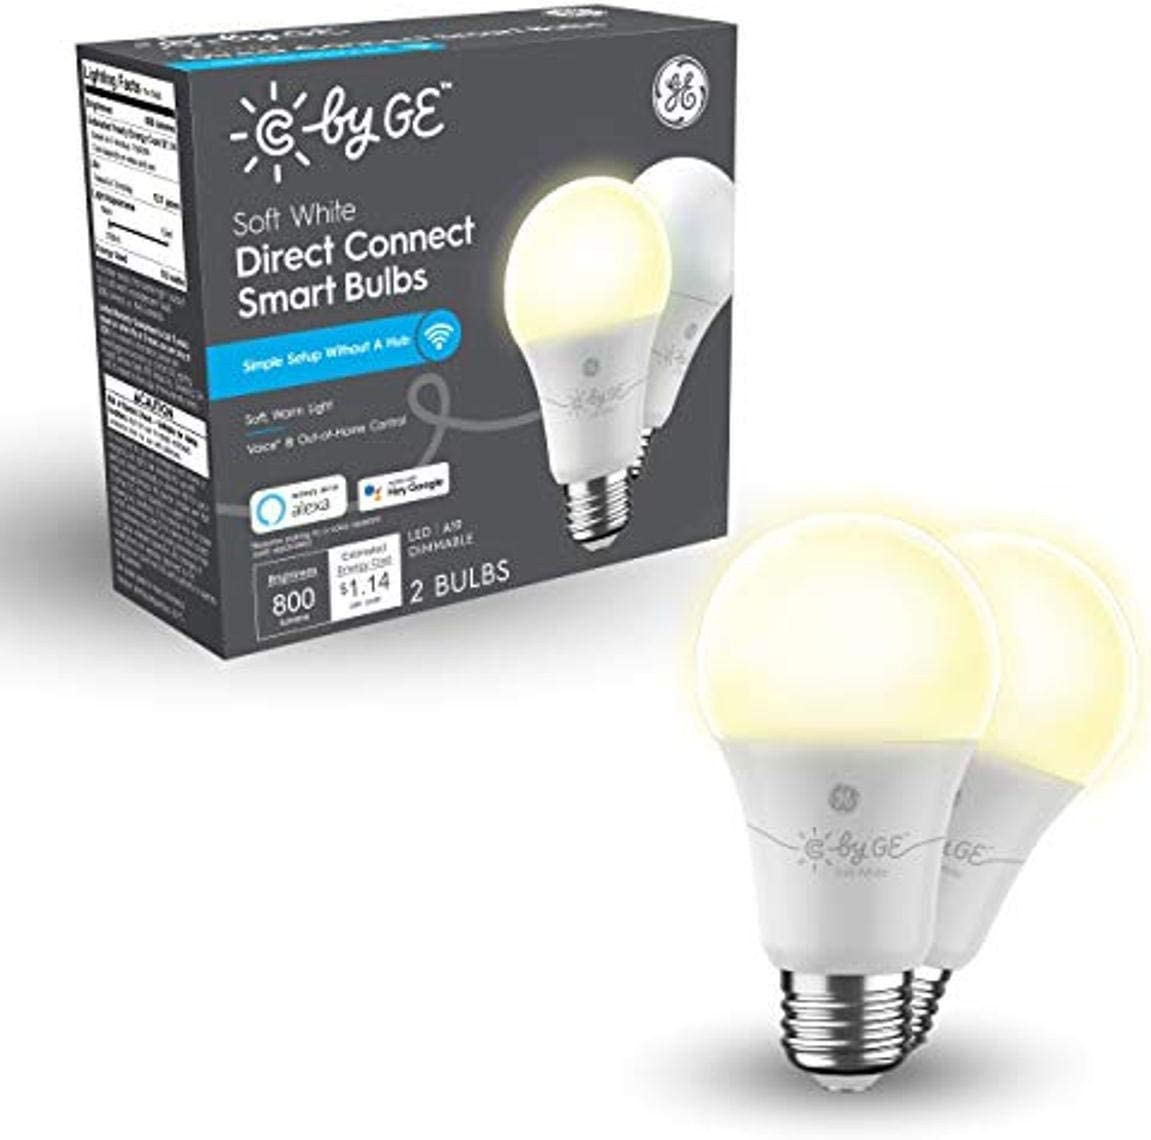 C by GE Soft White Direct Connect Light Bulbs (2 A19 Smart LED Bulbs), 60W Replacement, 2-Pack, Bluetooth Light Bulb, Wi-Fi Light Bulb, Smart Light Bulb Works with Alexa and Google Home Without a Hub